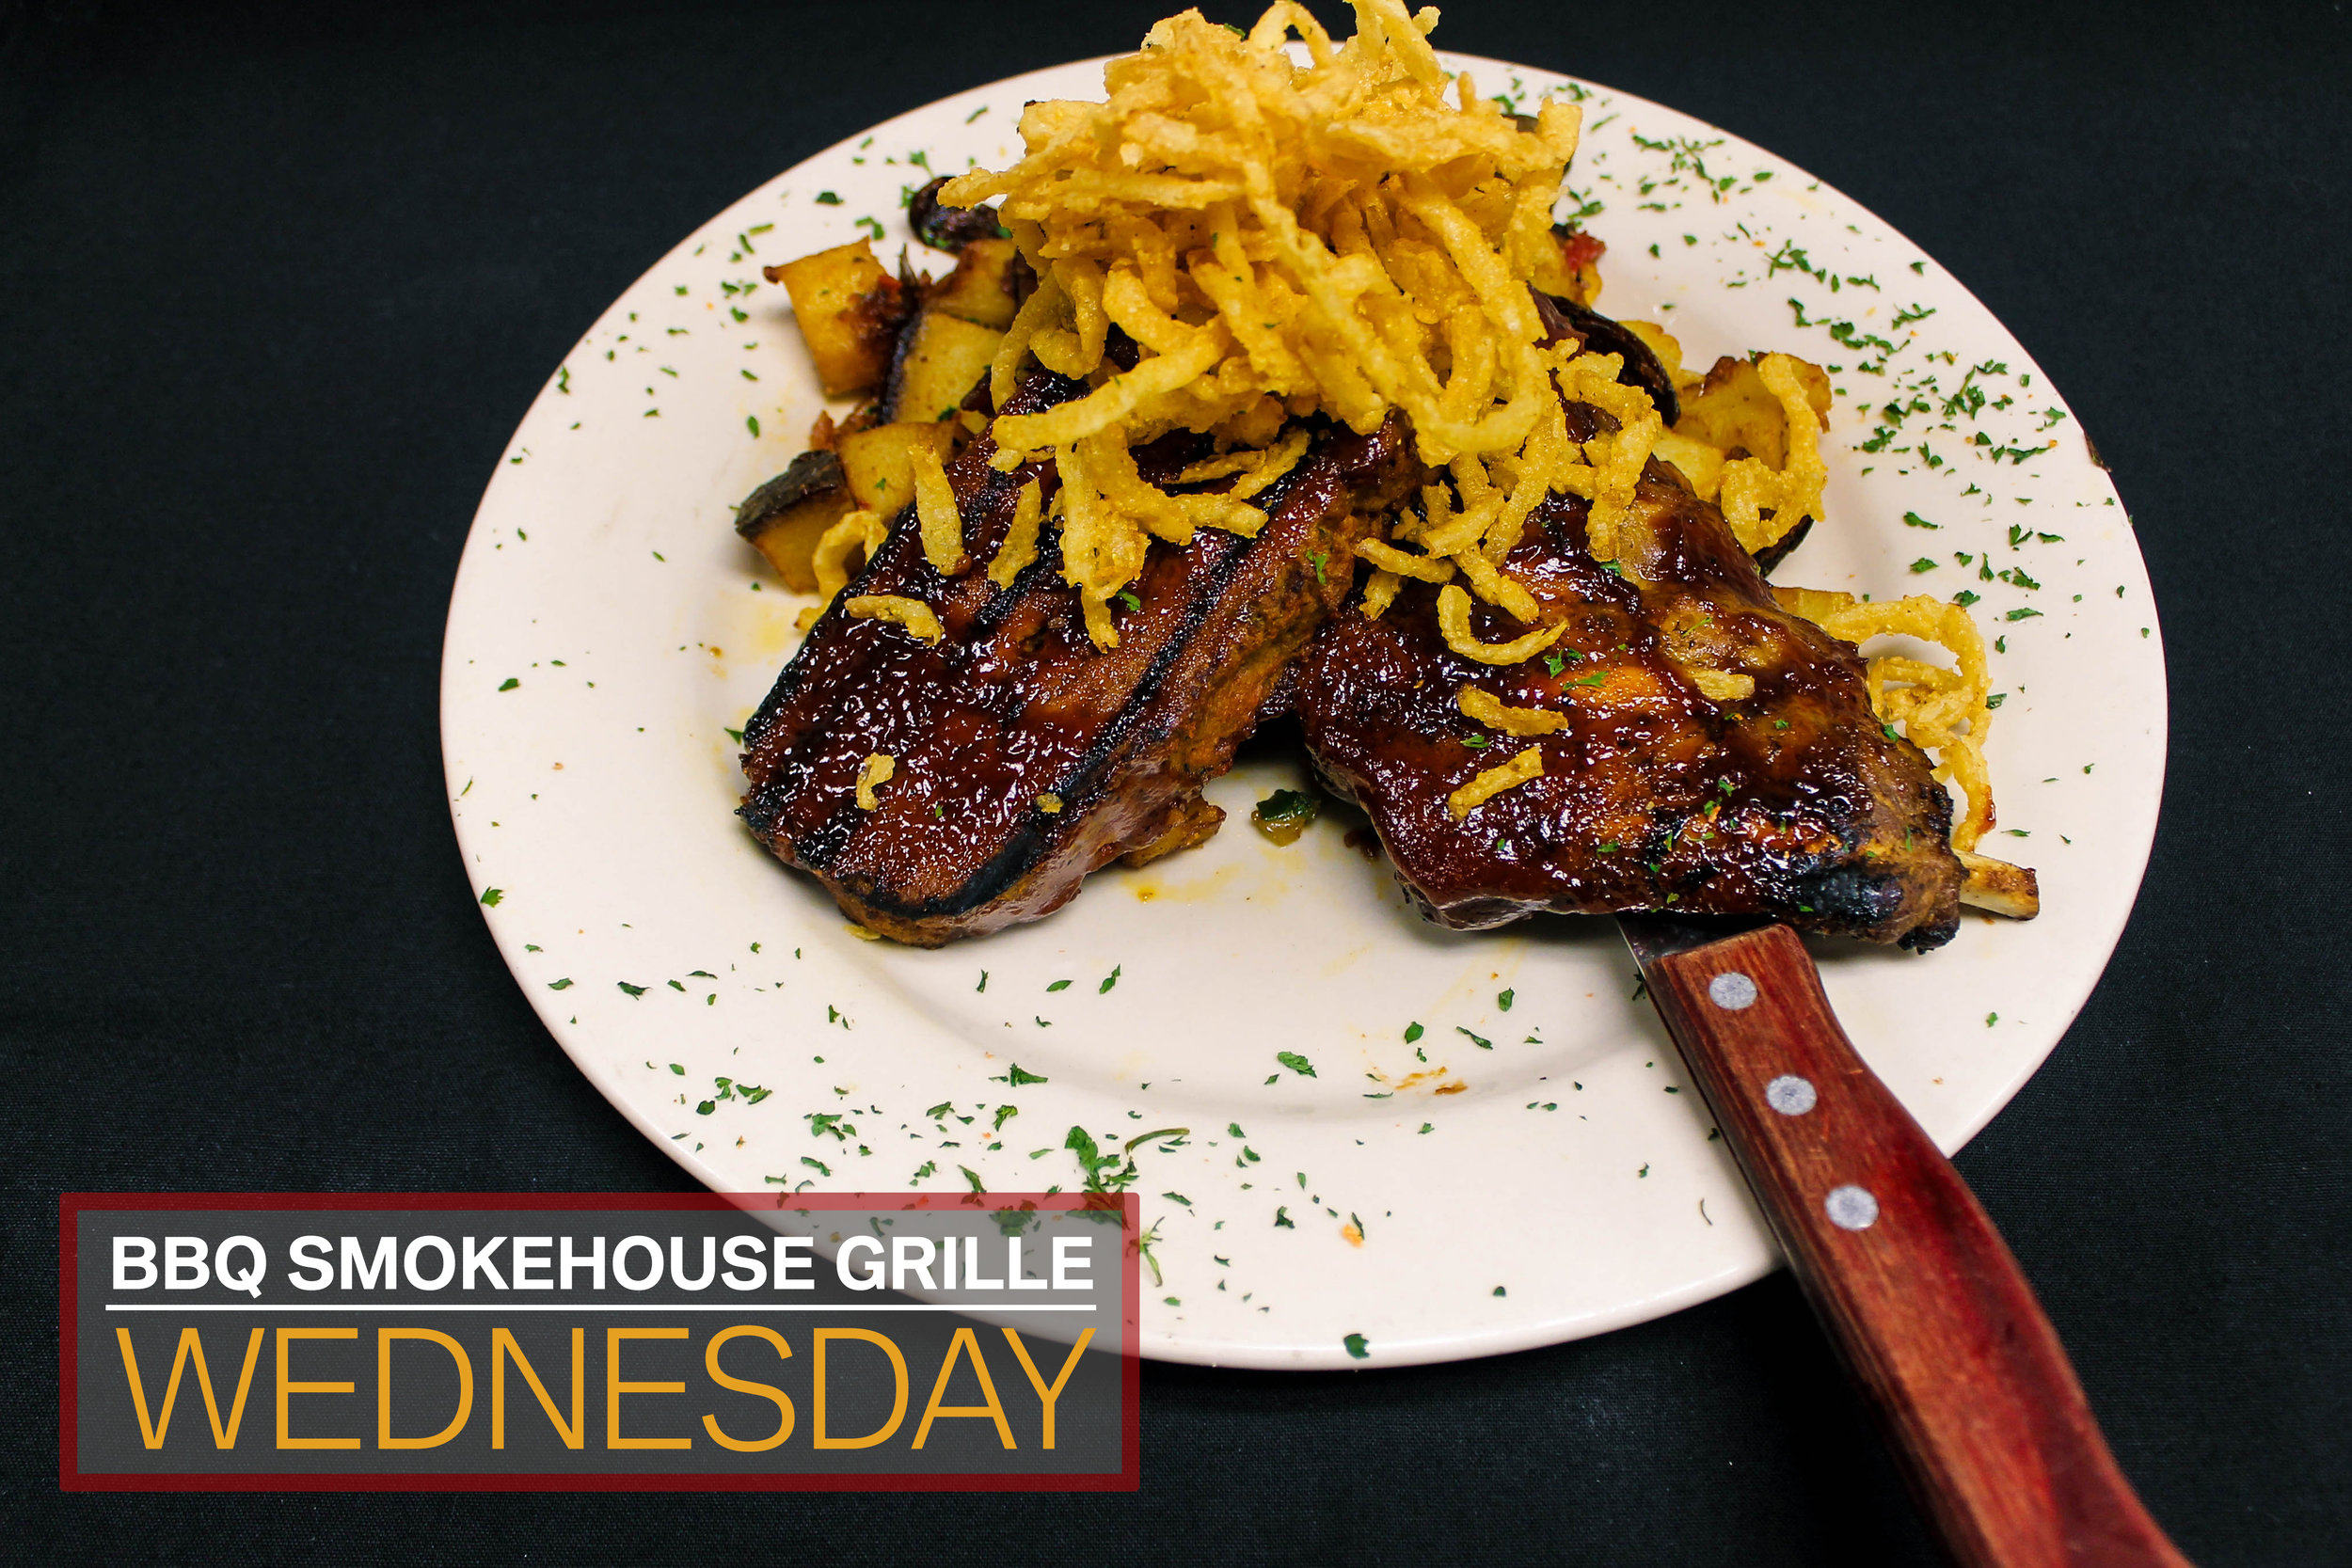 Wednesday  Barbecue Smokehouse Grille (Half Slab of Baby Back Ribs, Meatloaf, Memphis Potatoes and Fried Shredded Onions) $16.50  4 P.M. - 10 P.M.